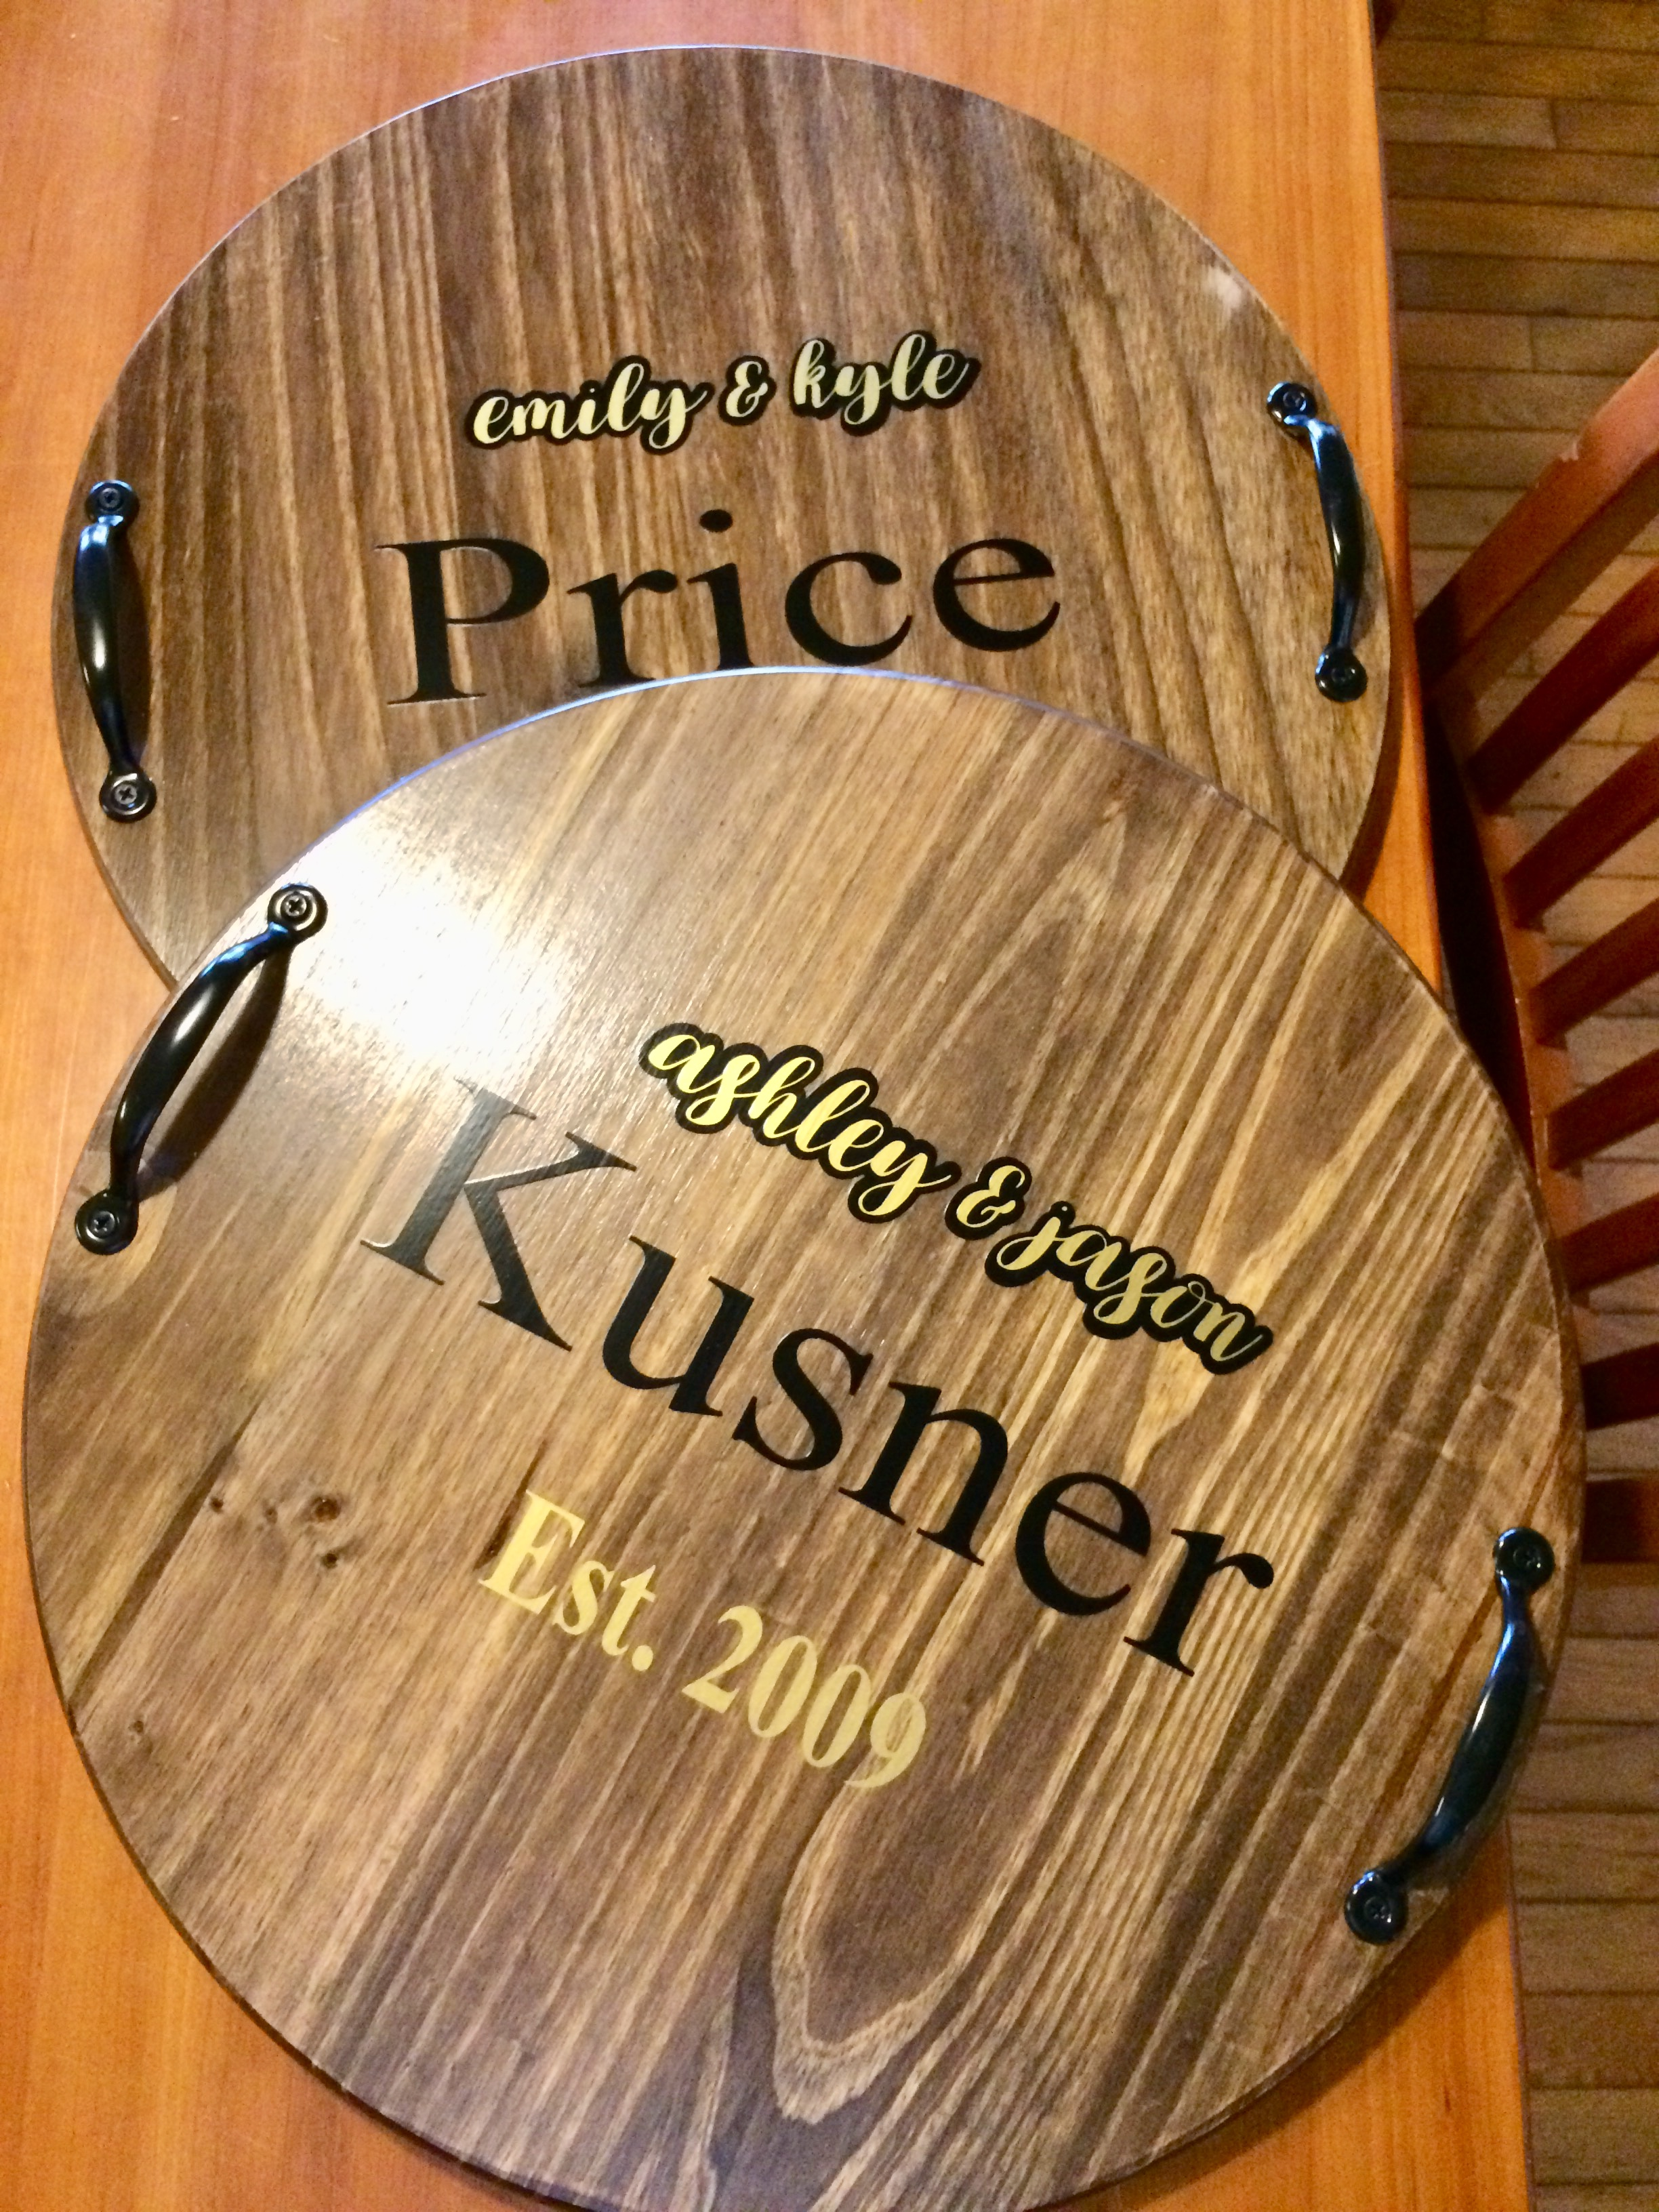 price.and.kussnerboards.jpeg